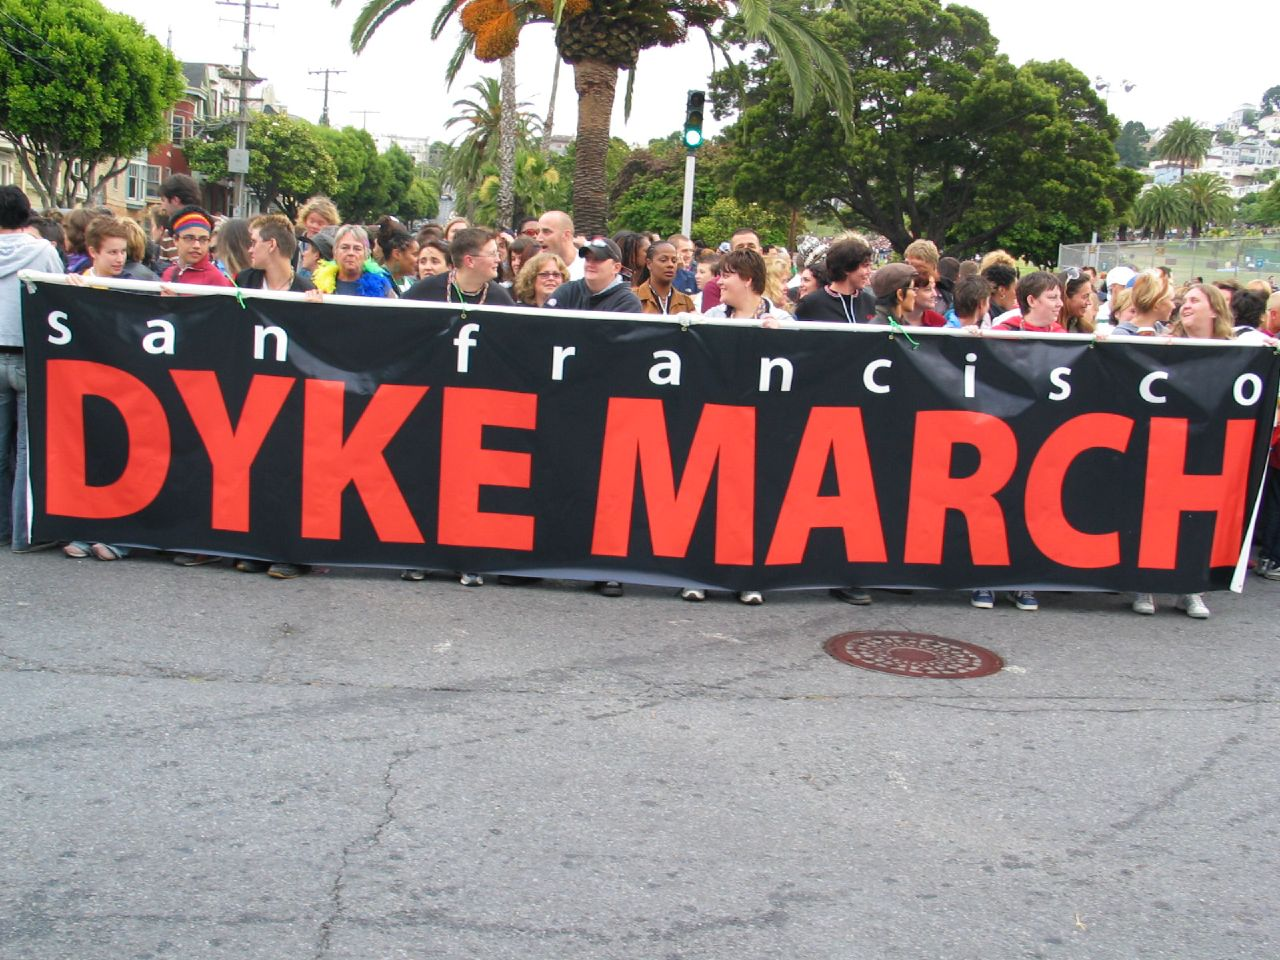 San Francisco Dyke March. Photo: Wendy Goodfriend